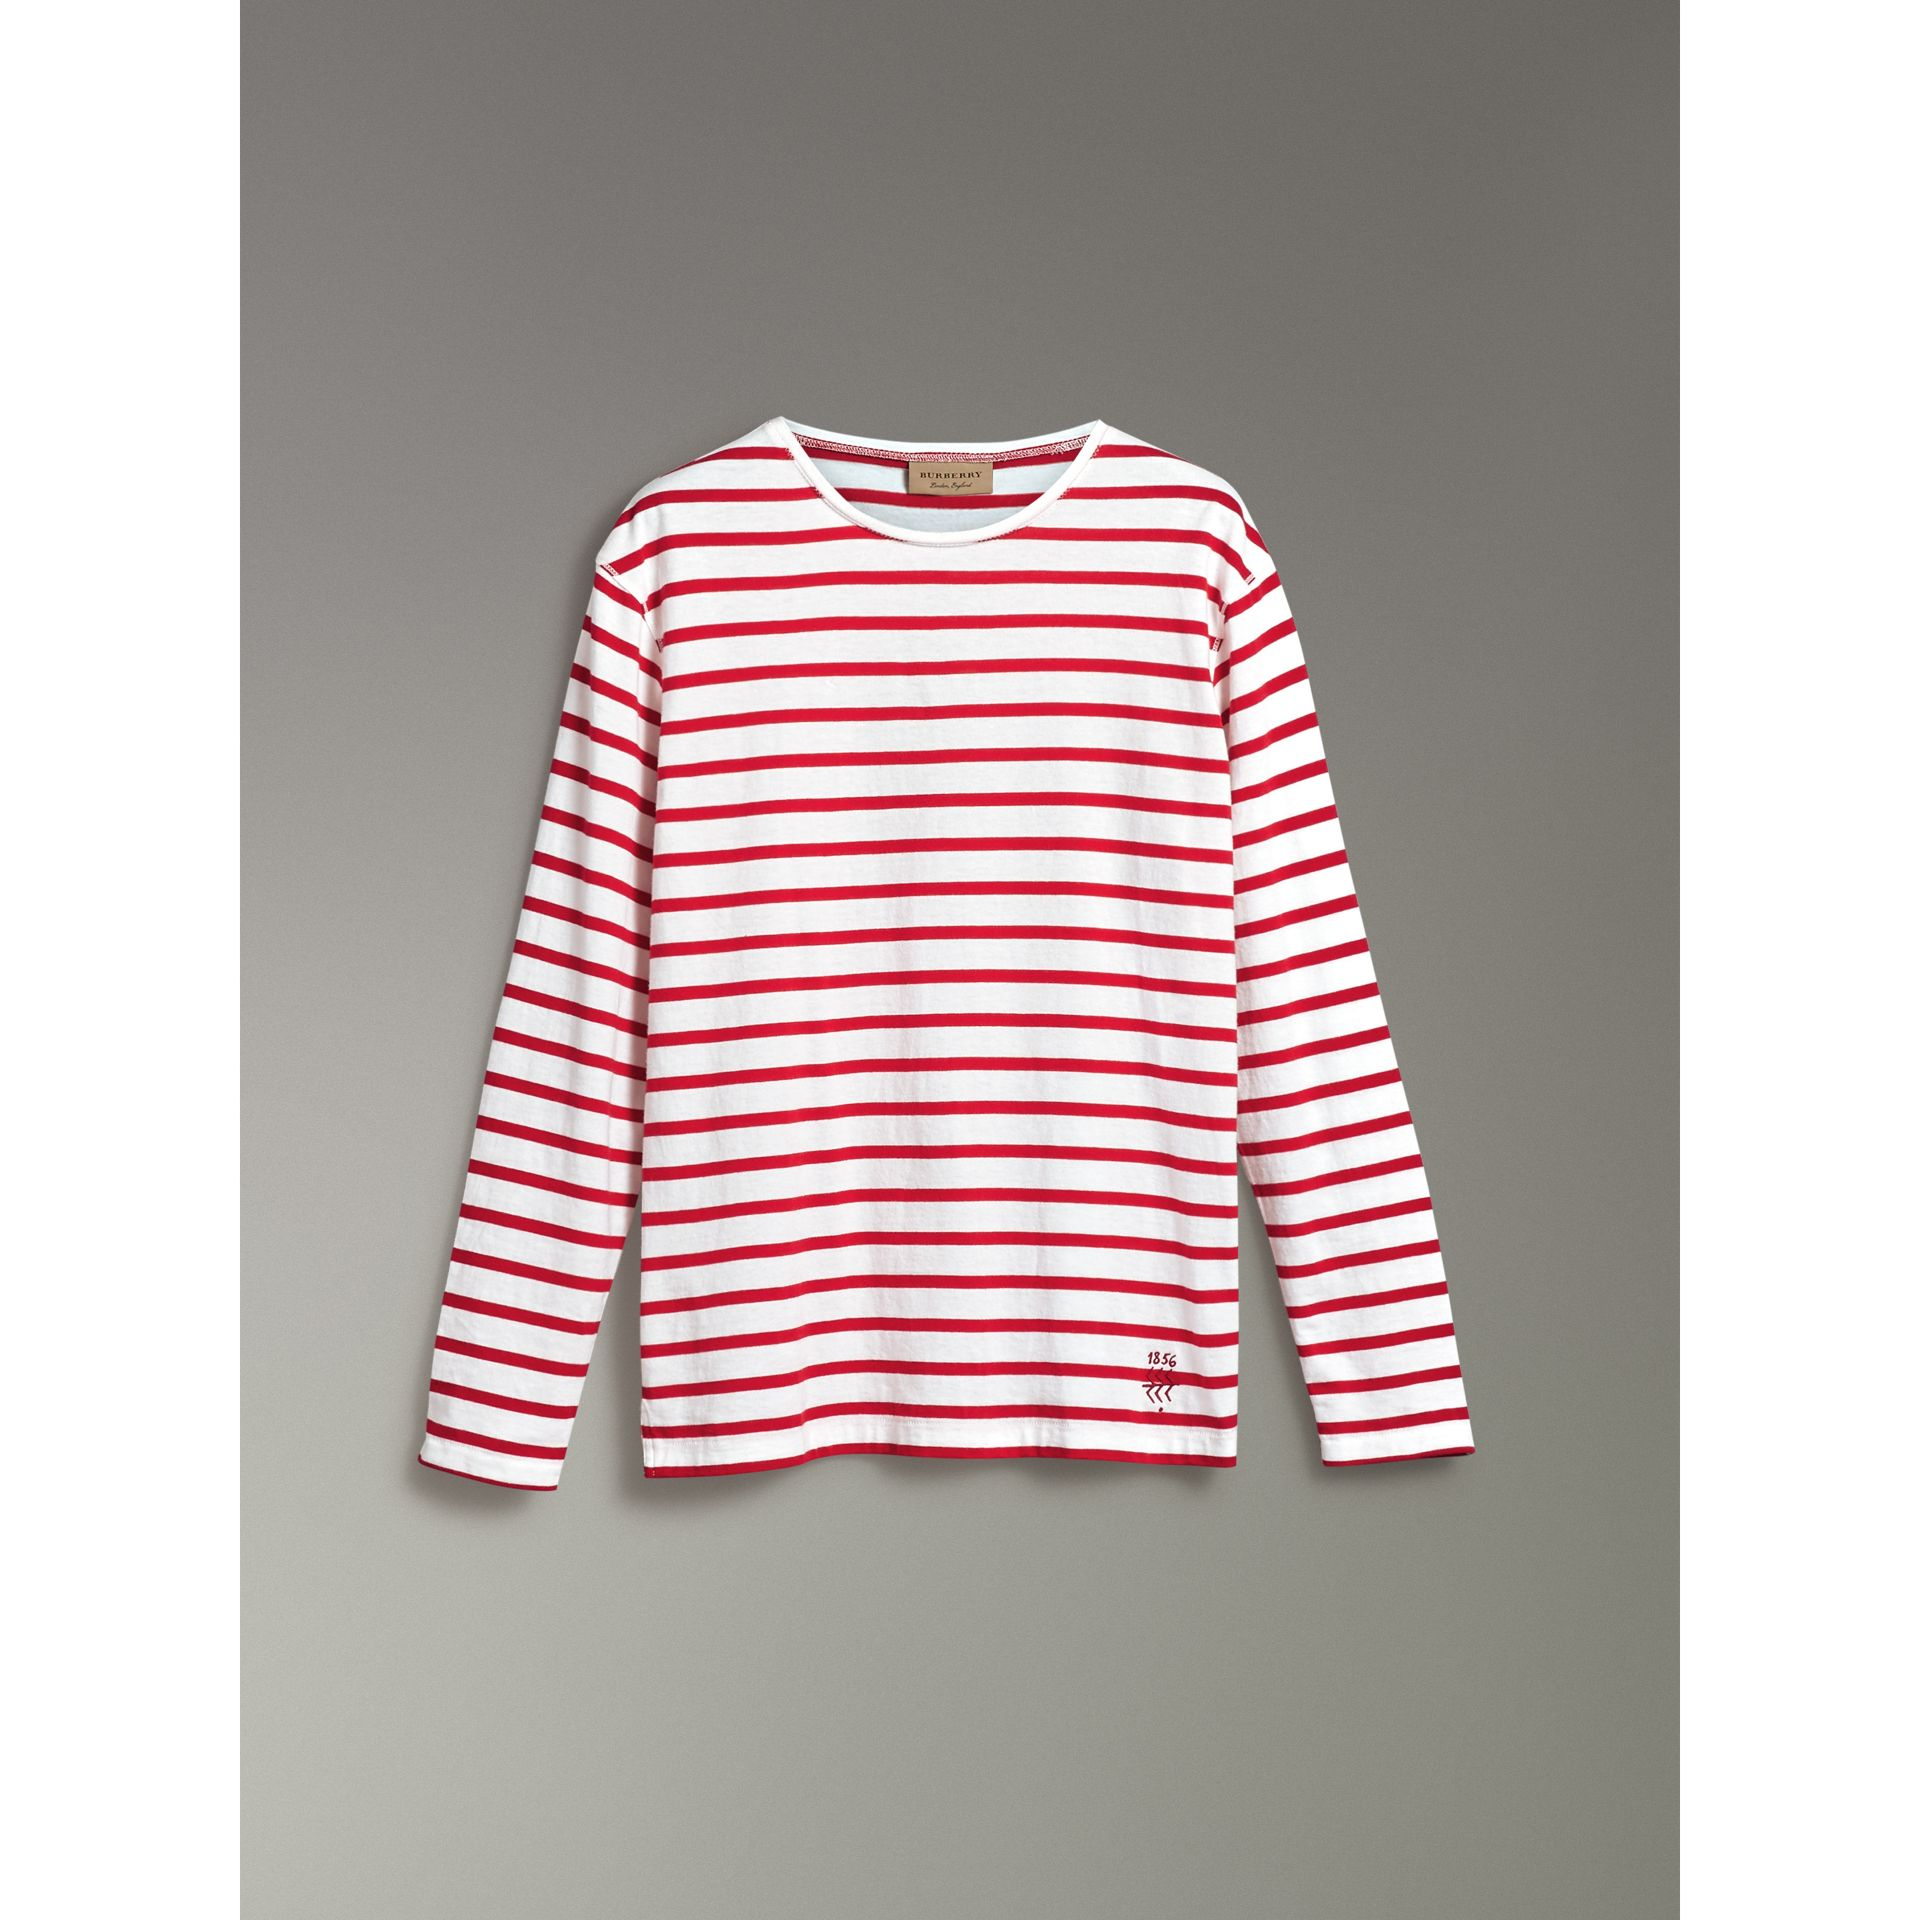 Breton Stripe Cotton Jersey Top in Red/white - Men | Burberry - gallery image 3